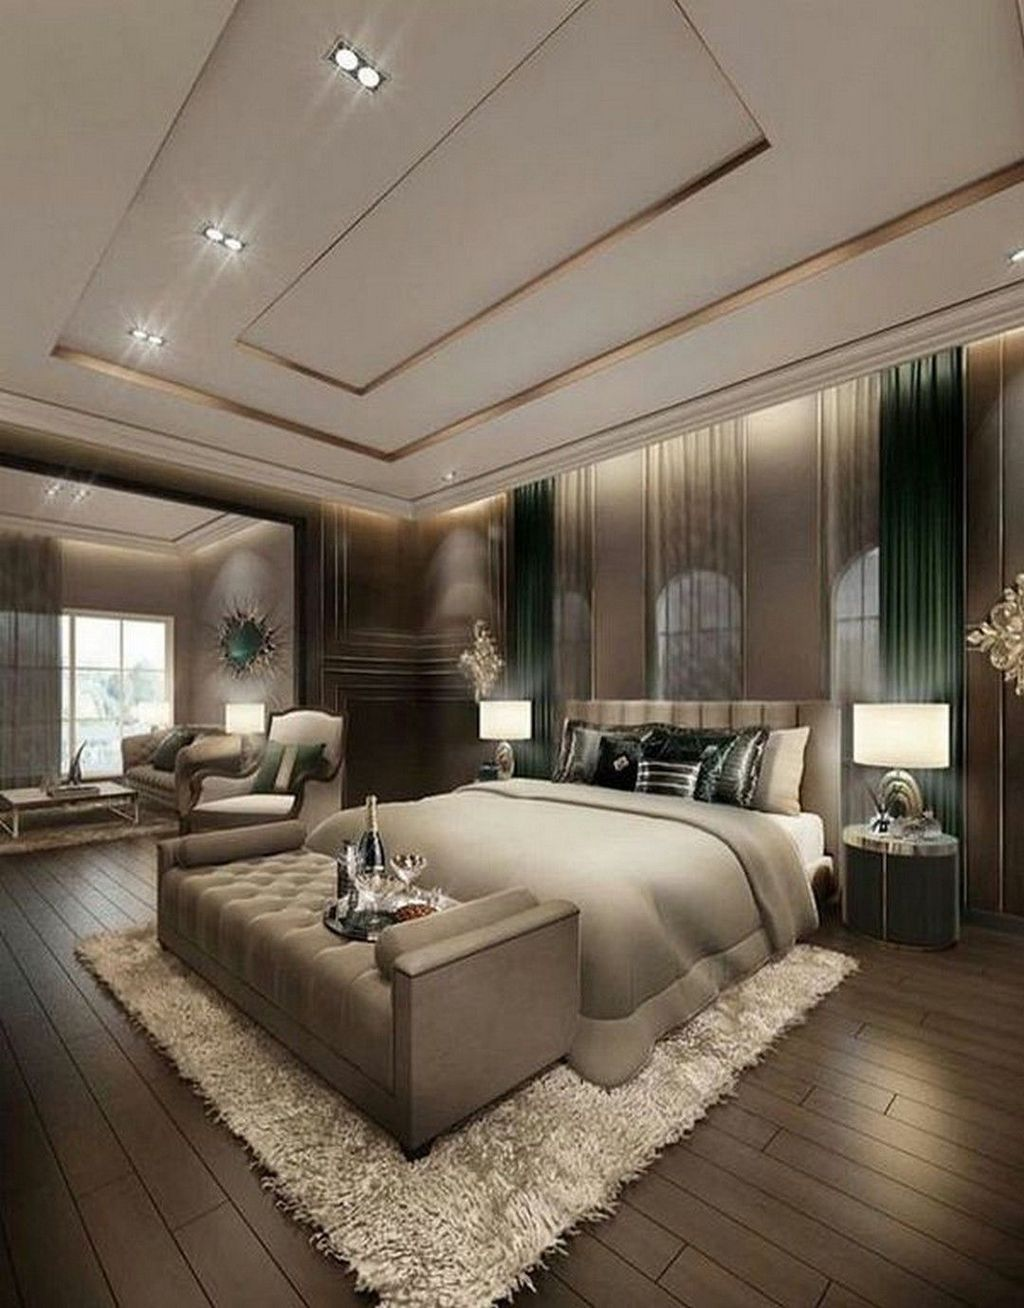 46 The Best Master Bedroom Design Ideas Luxury Bedroom Master Amazing Bedroom Designs Luxury Master Bedroom Design